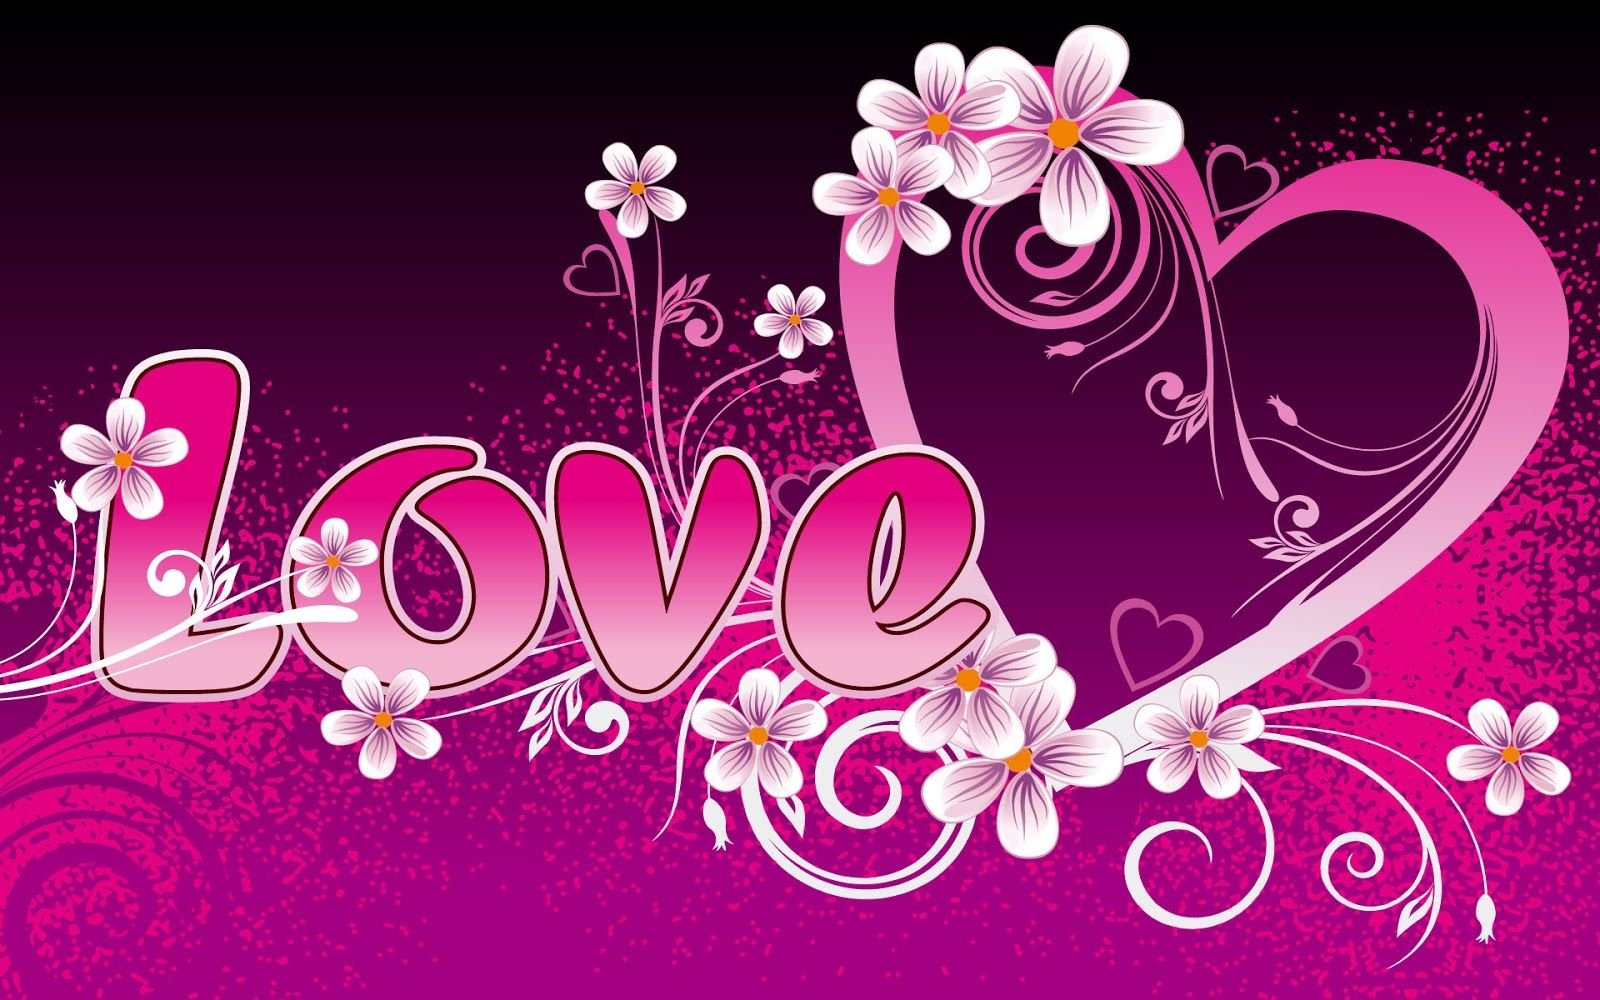 Download 89+ Gambar Romantis Love Paling Baru Gratis